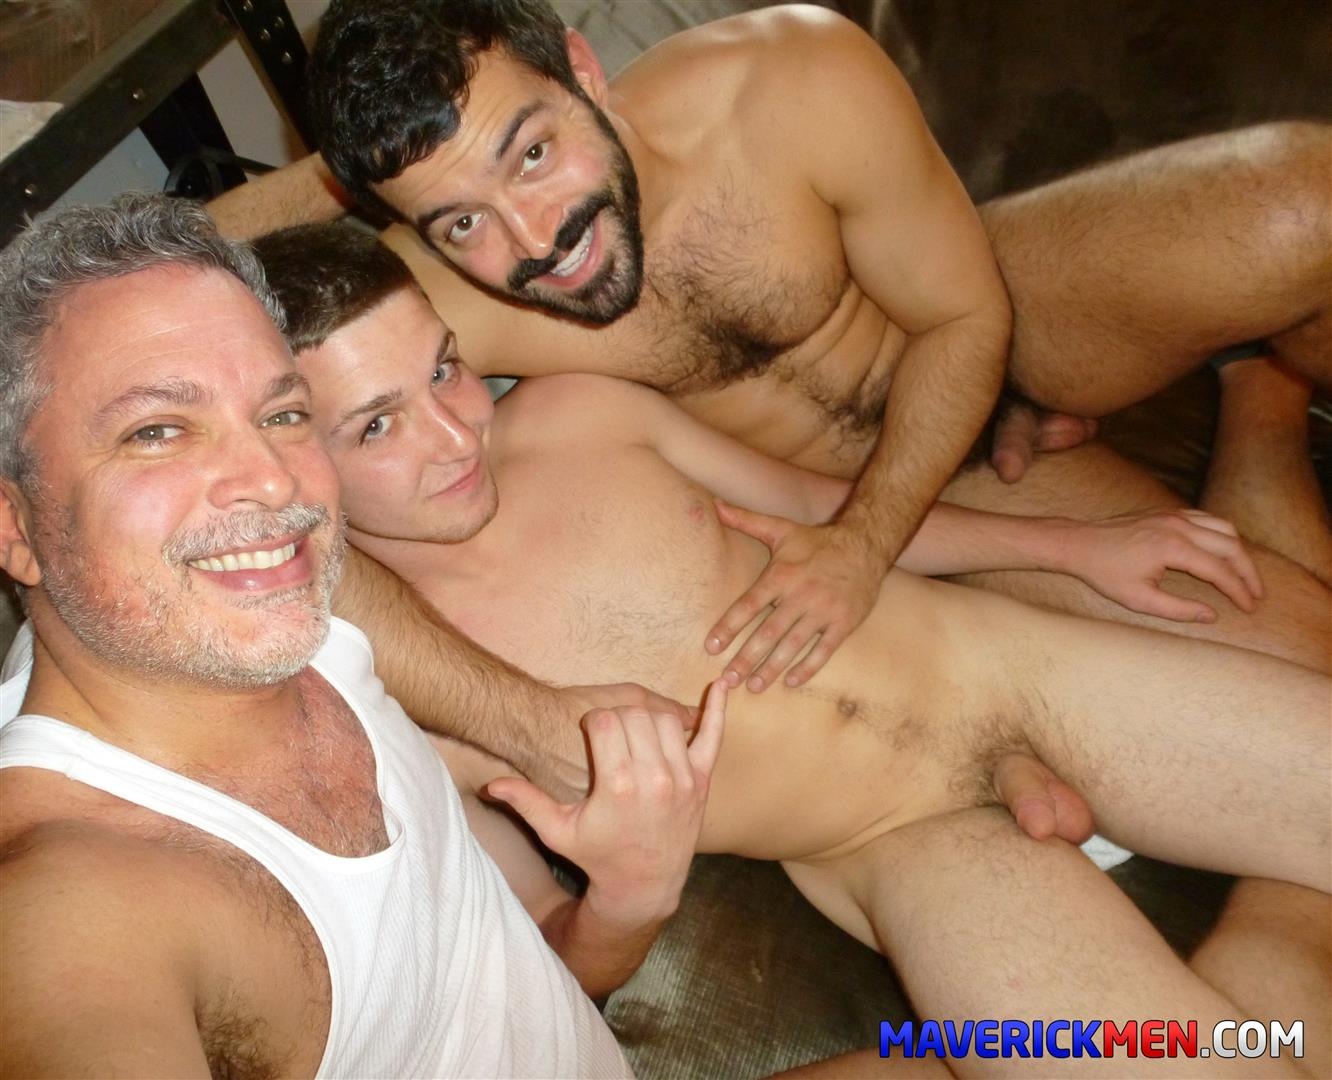 The Maverick Men Tom Hairy Twink Getting Fucked By Two Muscle Daddies Bareback BBBH Amateur Gay Porn 17 Straight Hairy Twink Gets Fucked By Two Muscle Daddies